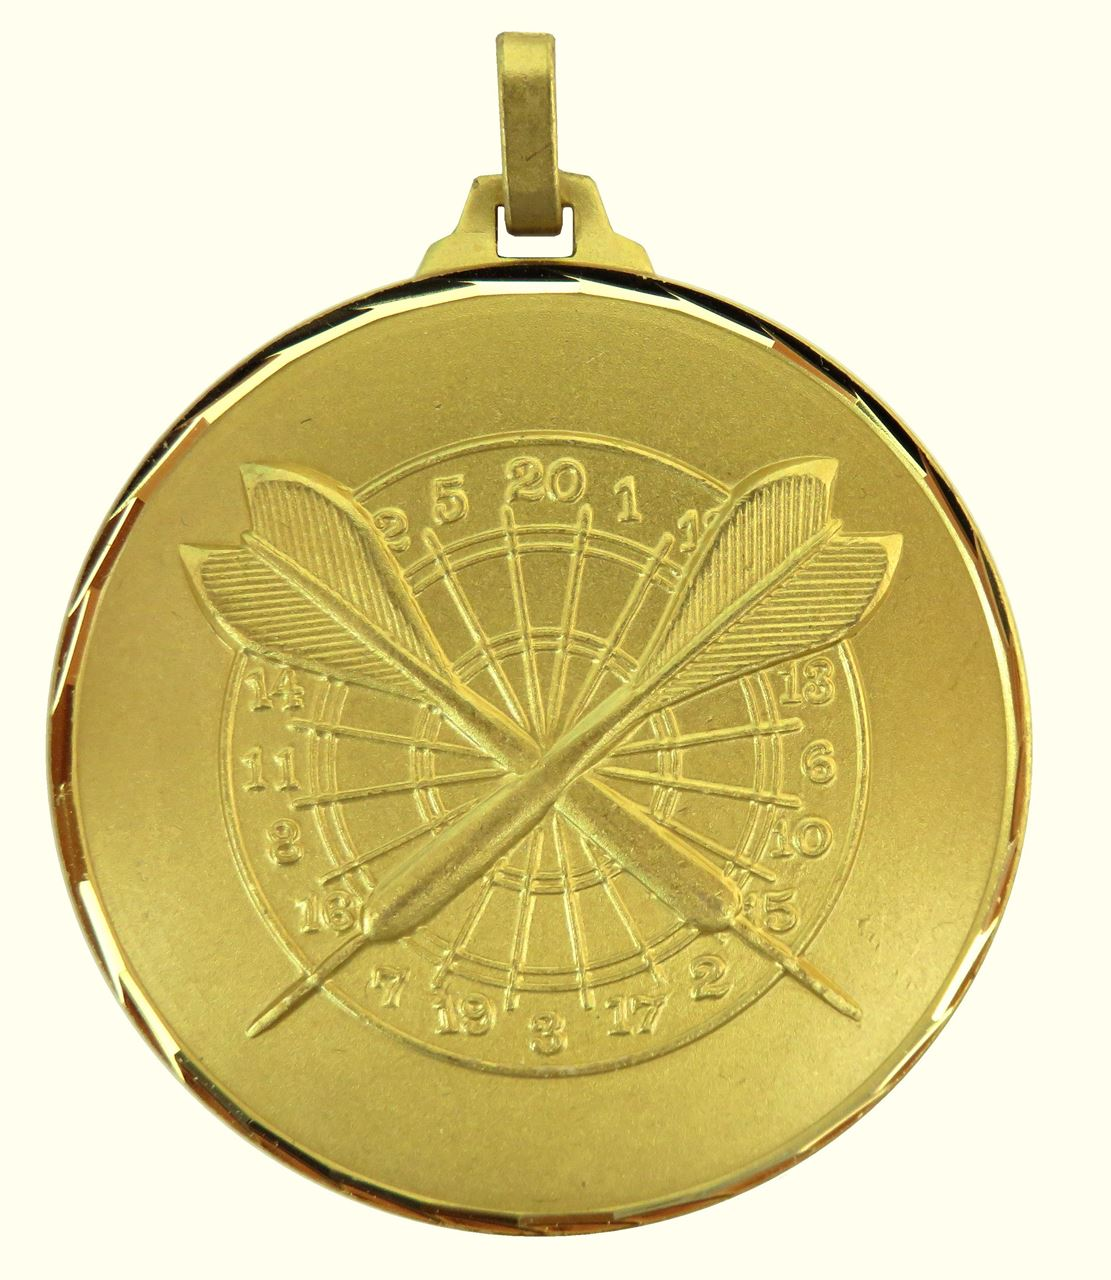 Gold Faceted Darts Medal (size: 52mm) - H38F